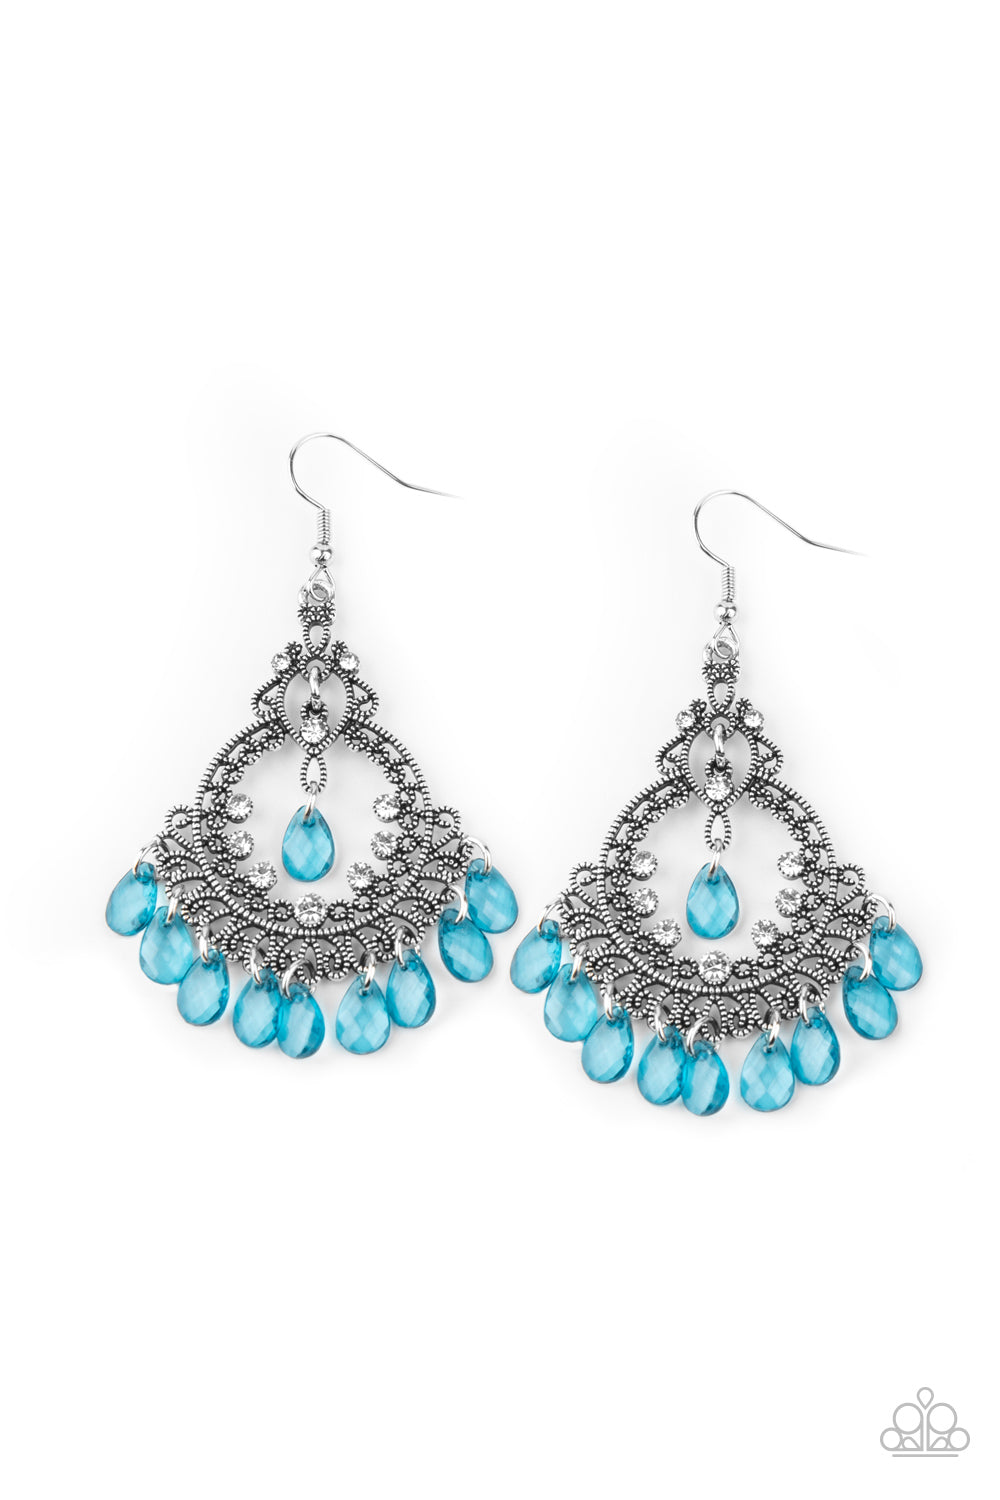 Lyrical Luster - Blue Earrings Paparazzi Accessories New